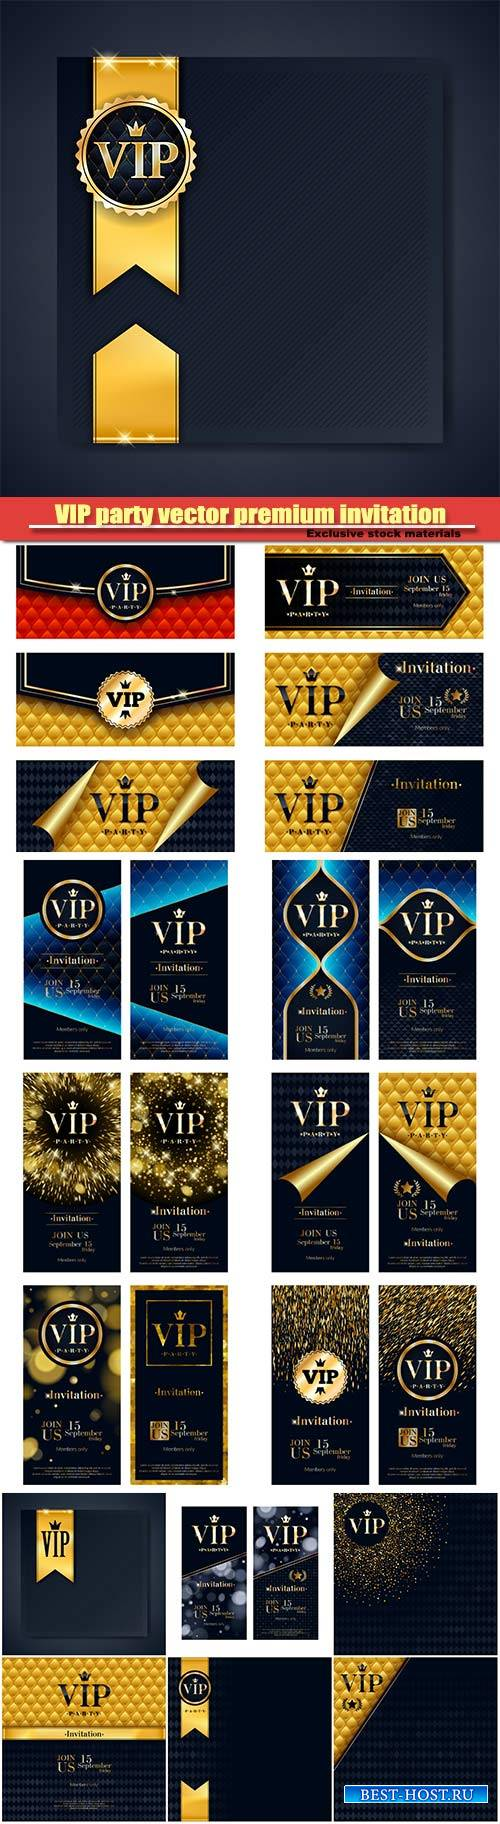 VIP party vector premium invitation gold card poster flyer set